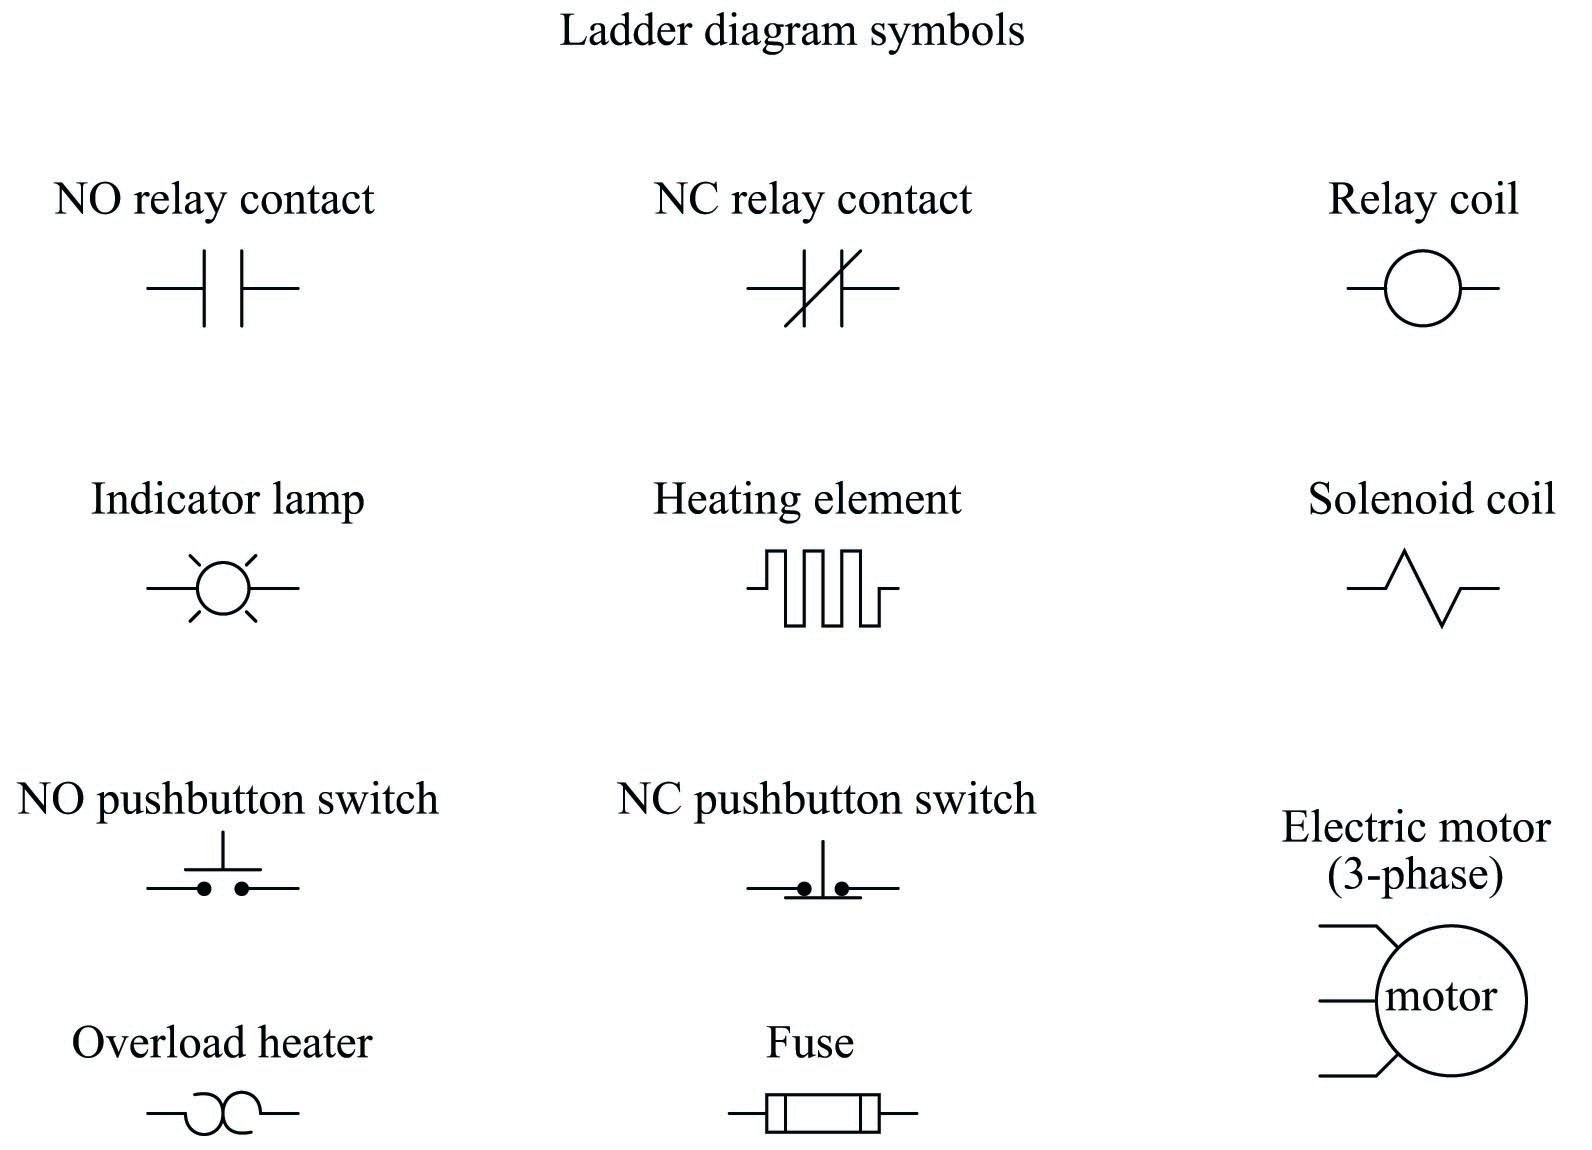 relay circuits and ladder diagrams | relay control systems | automation  textbook  control.com